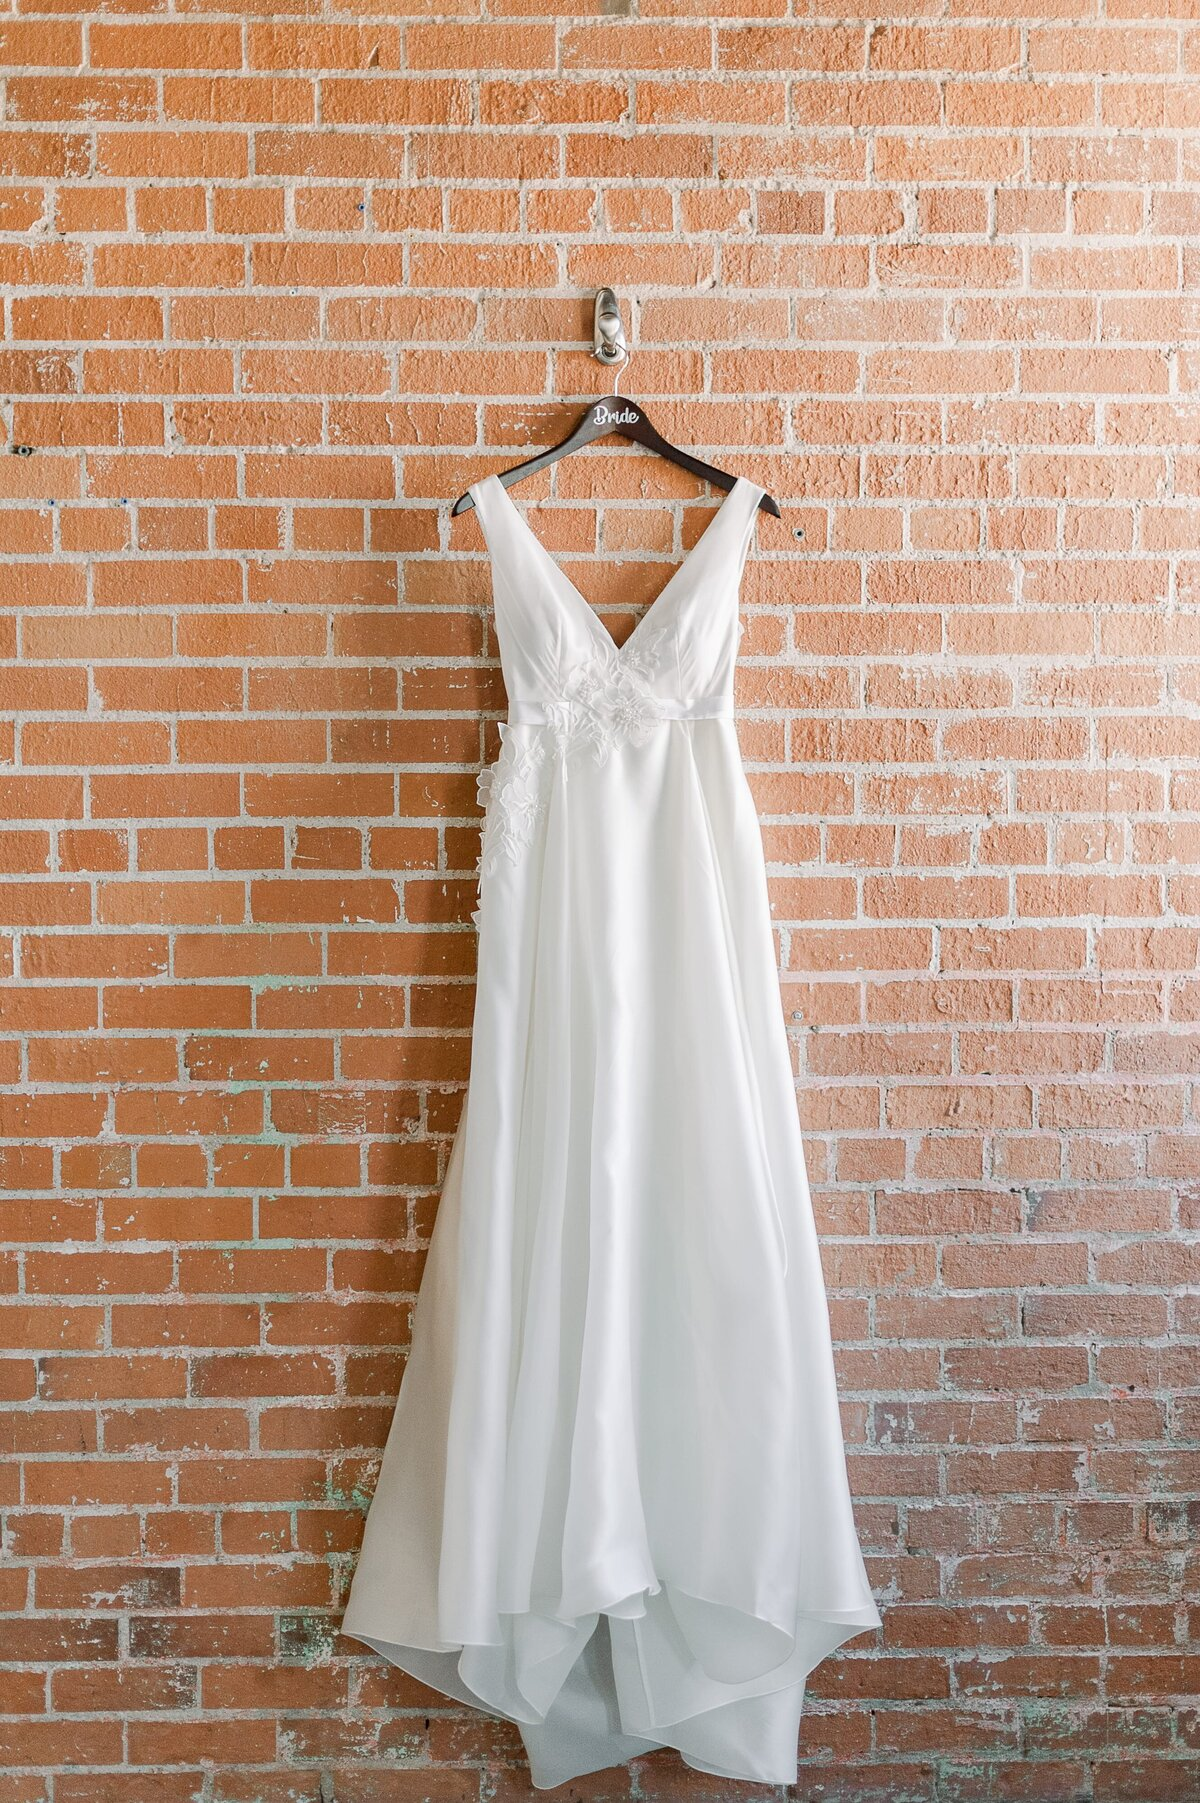 Bride-gown-on-brick-wall